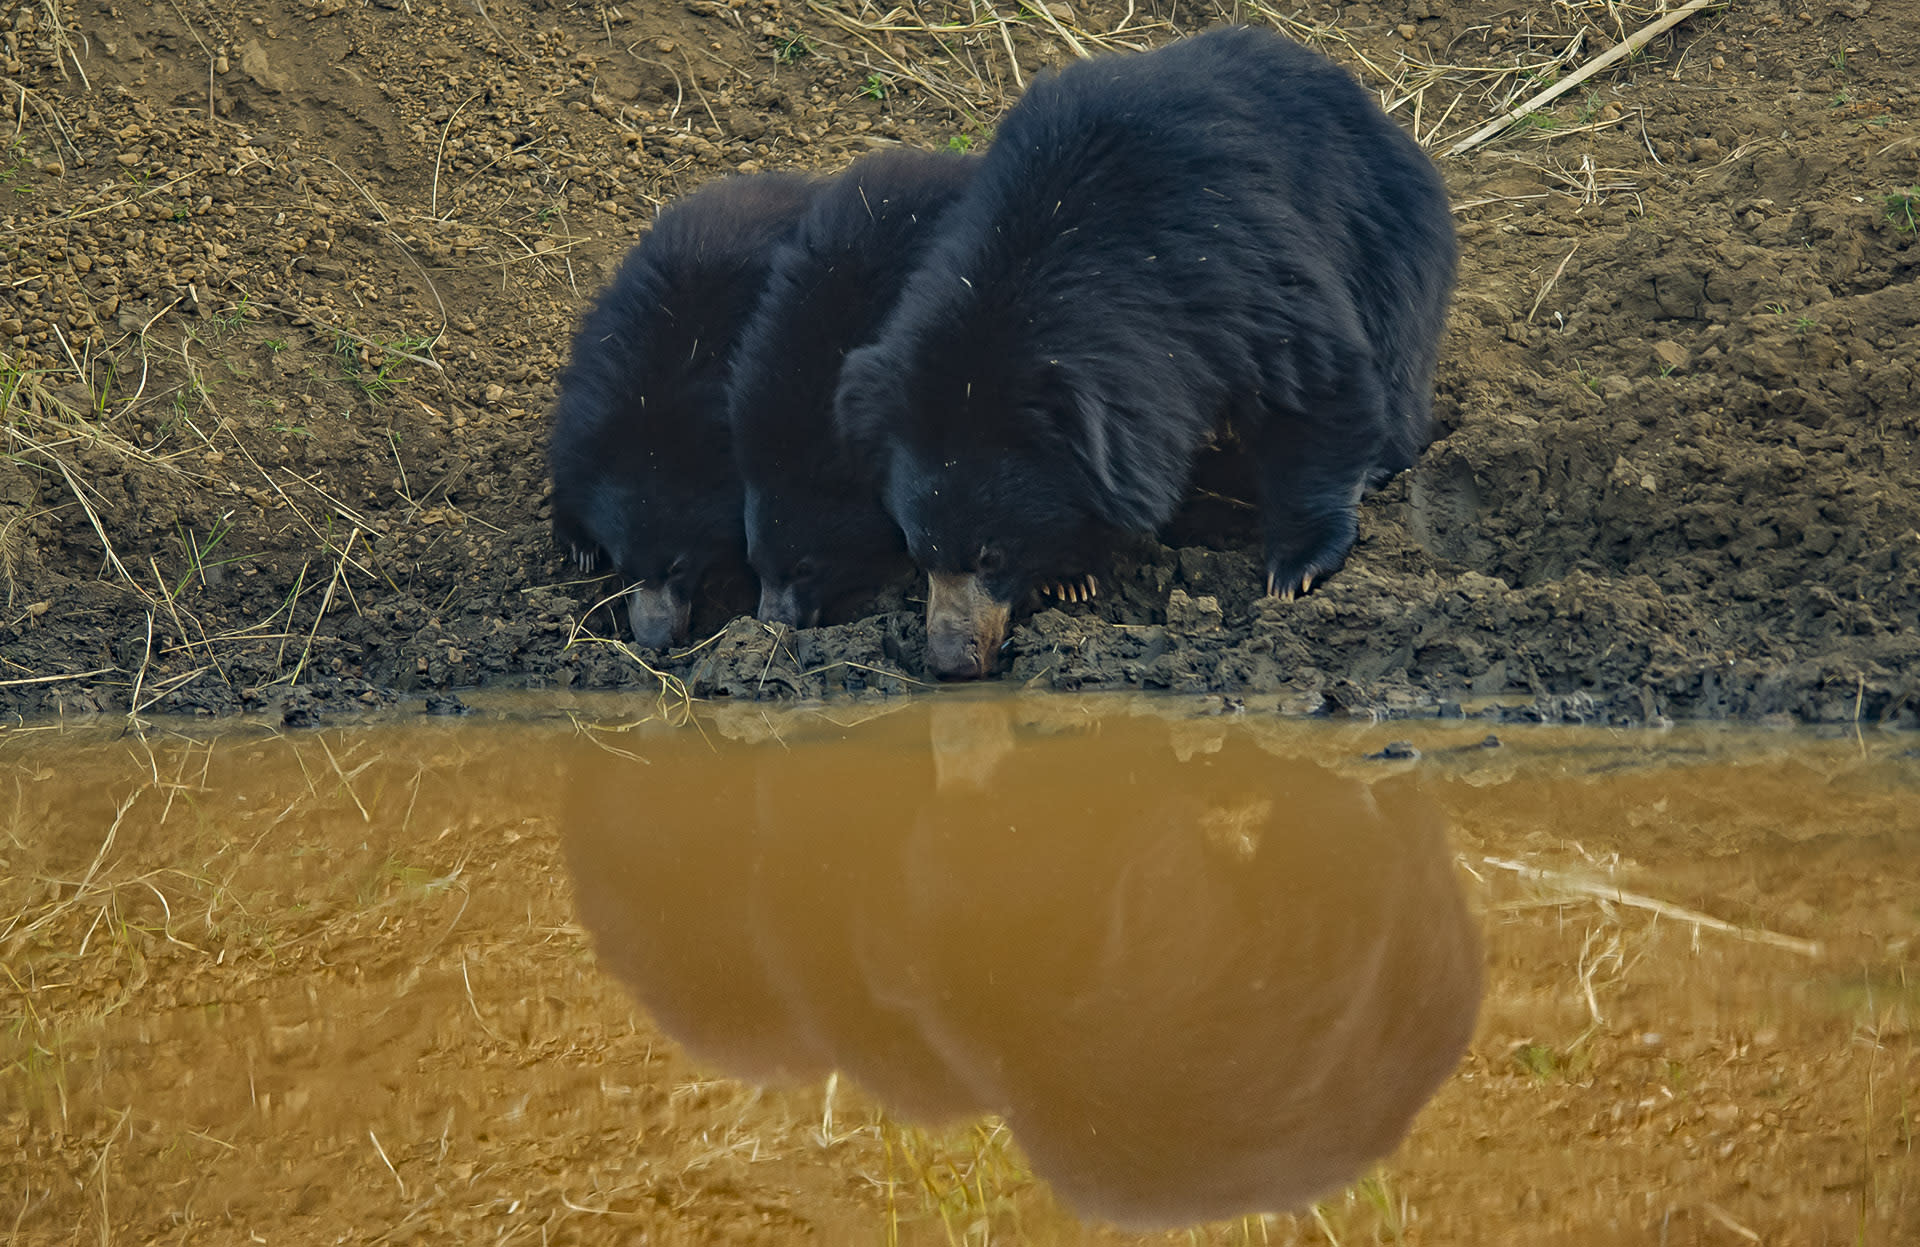 """Studies by Wildlife SOS also indicate that sloth bears occasionally share caves or dens with porcupines, rusty-spotted cats, jungle cats, mongoose, wild boar, snake species, and monitor lizards. """"Once sloth bear mothers enter a den to give birth, they will not come back out for food or water for three to eight weeks,"""" reports the Wildlife SOS website. """"When she first emerges from the den, she does so alone, leaving the cubs in the den, and quickly gets some water and food before returning to her cubs."""""""